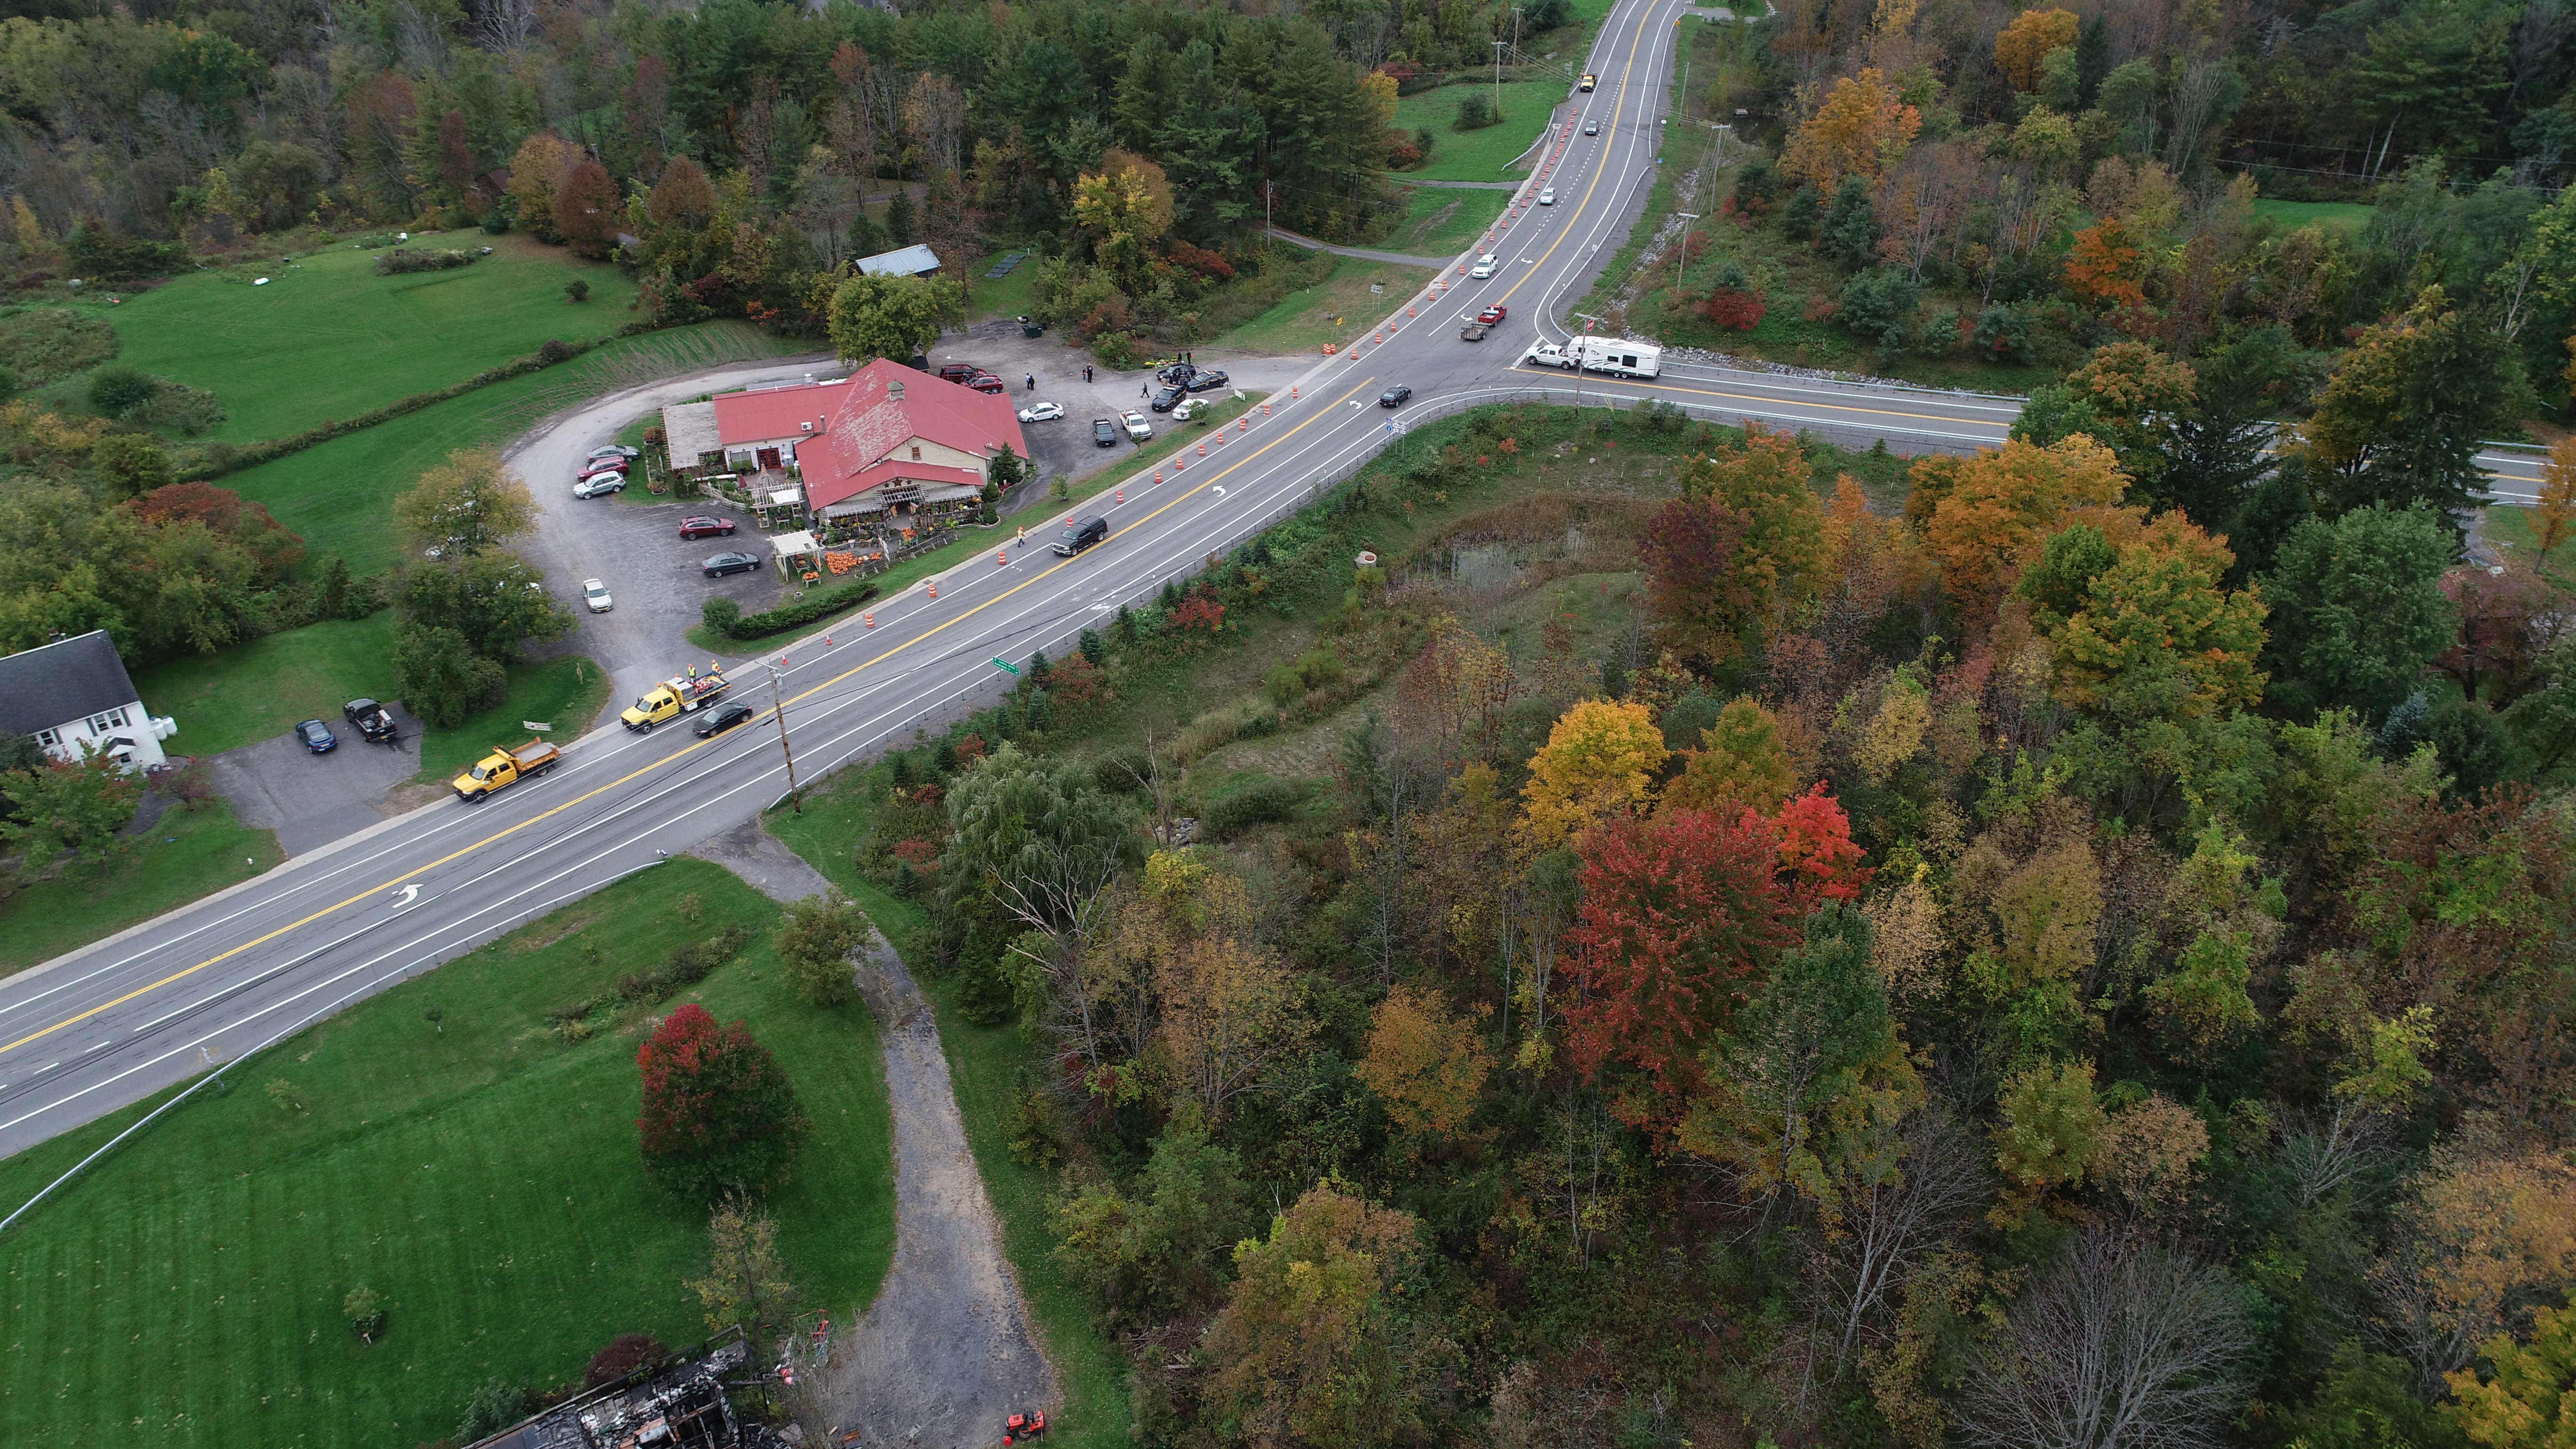 Video: Drone view of Schoharie accident site